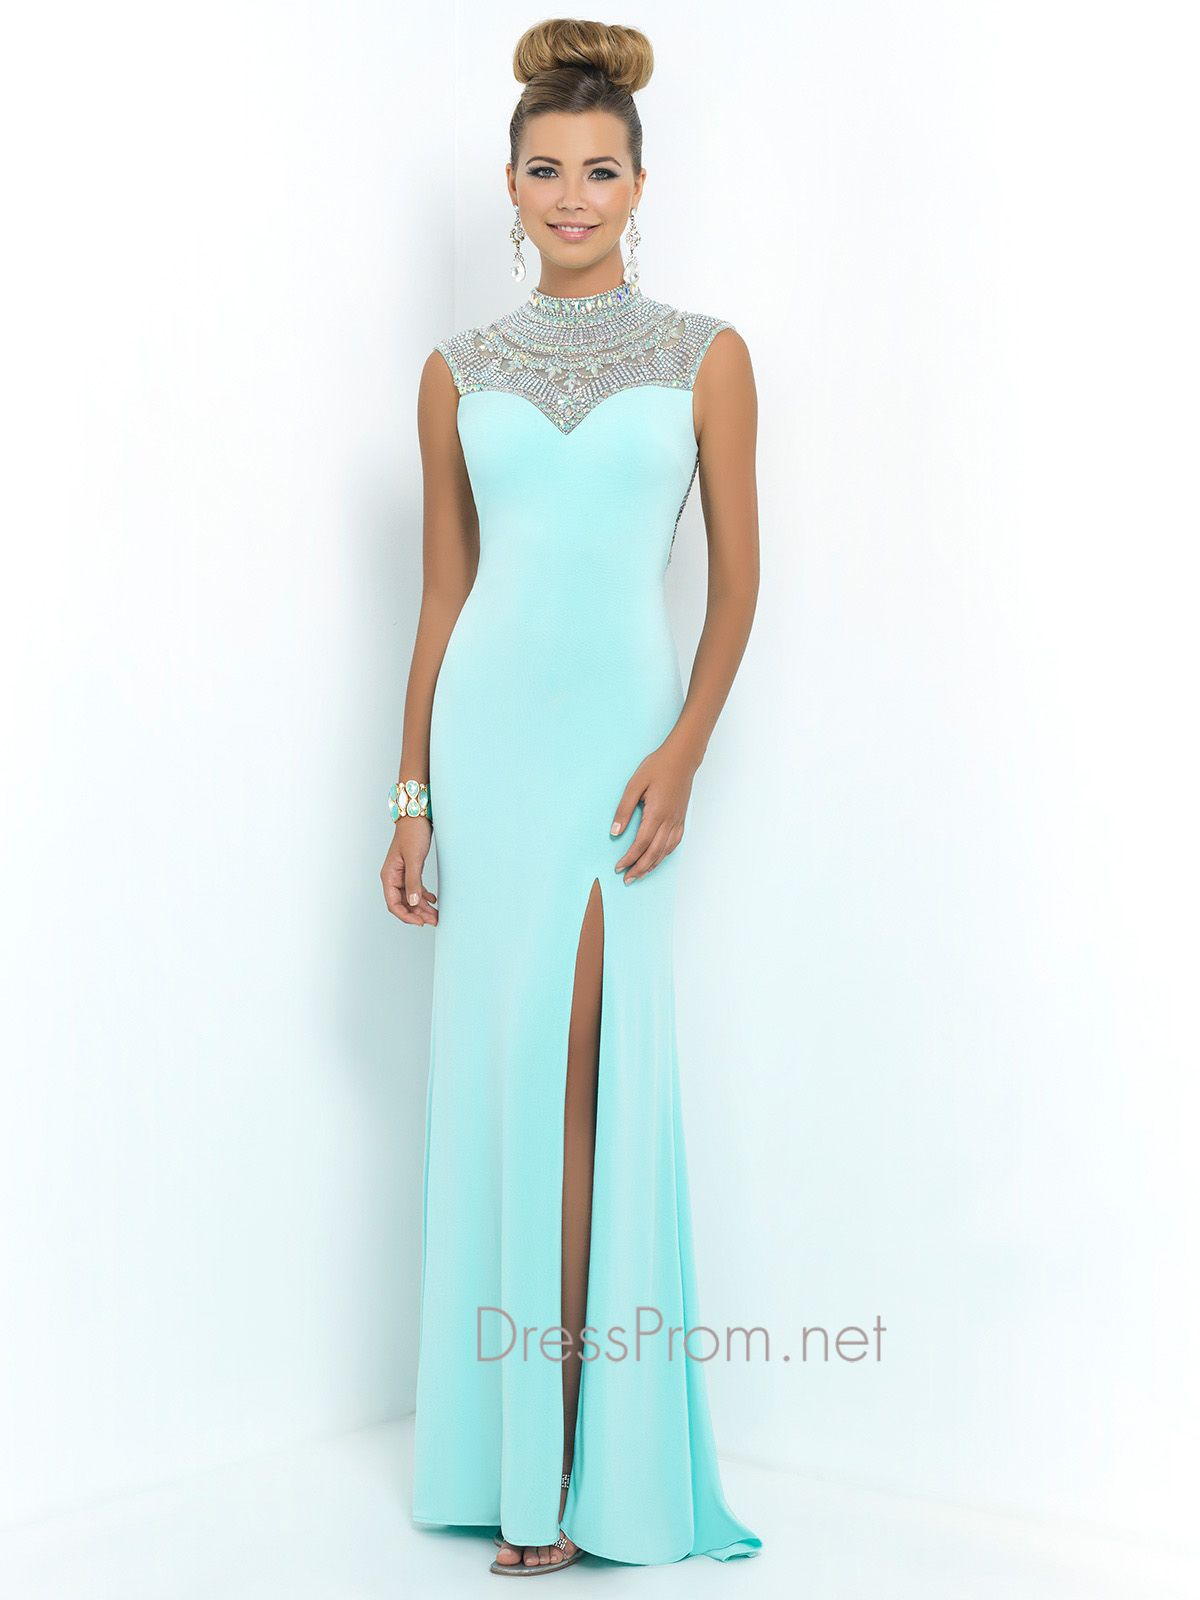 Blush Cut Out Back Prom Dress 9988 from Dress Prom | Prom 2015 ...